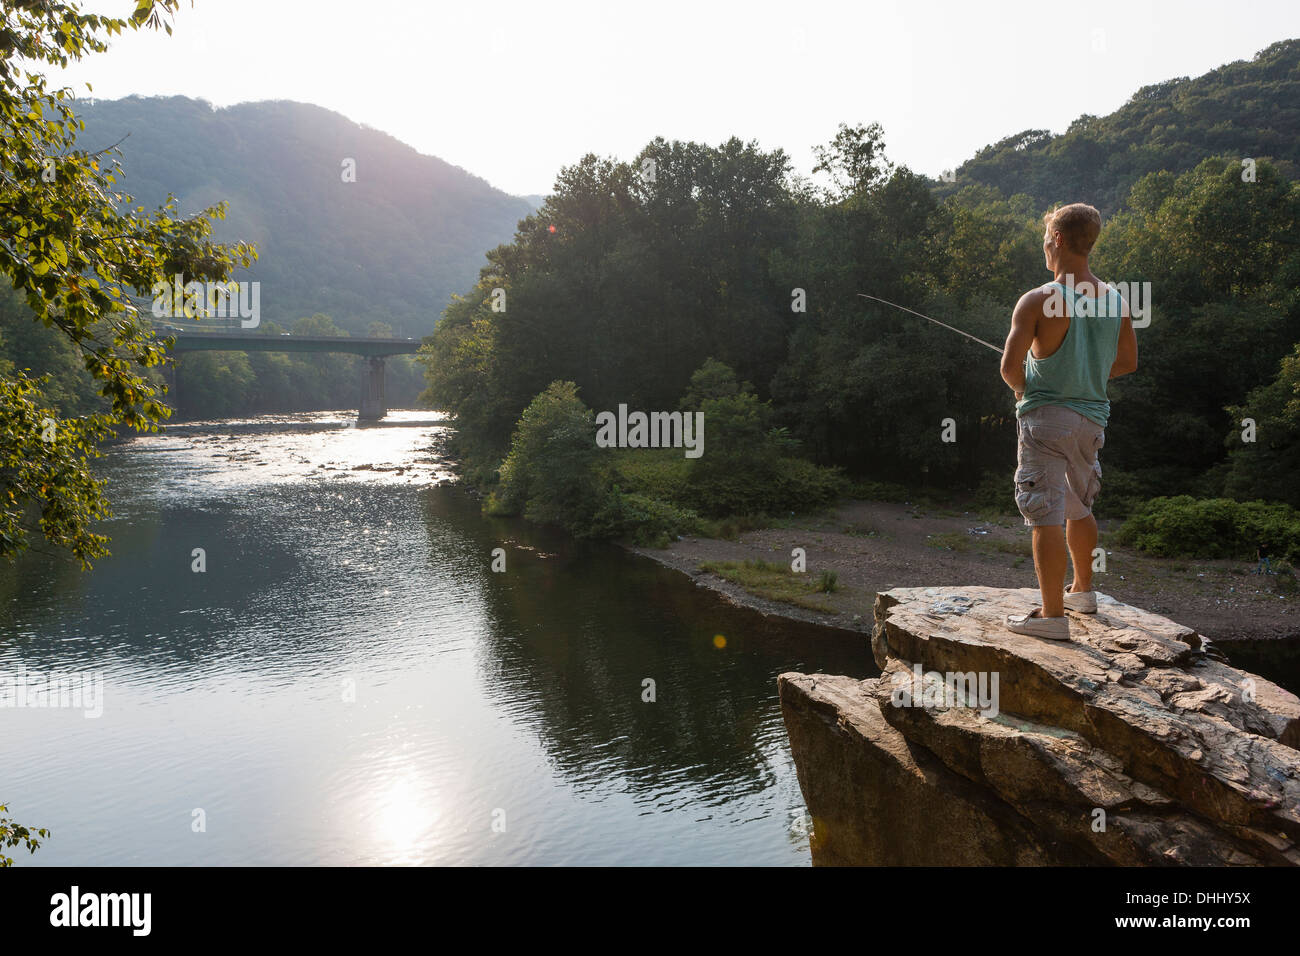 Young man fishing from rock ledge, Hamburg, Pennsylvania, USA - Stock Image